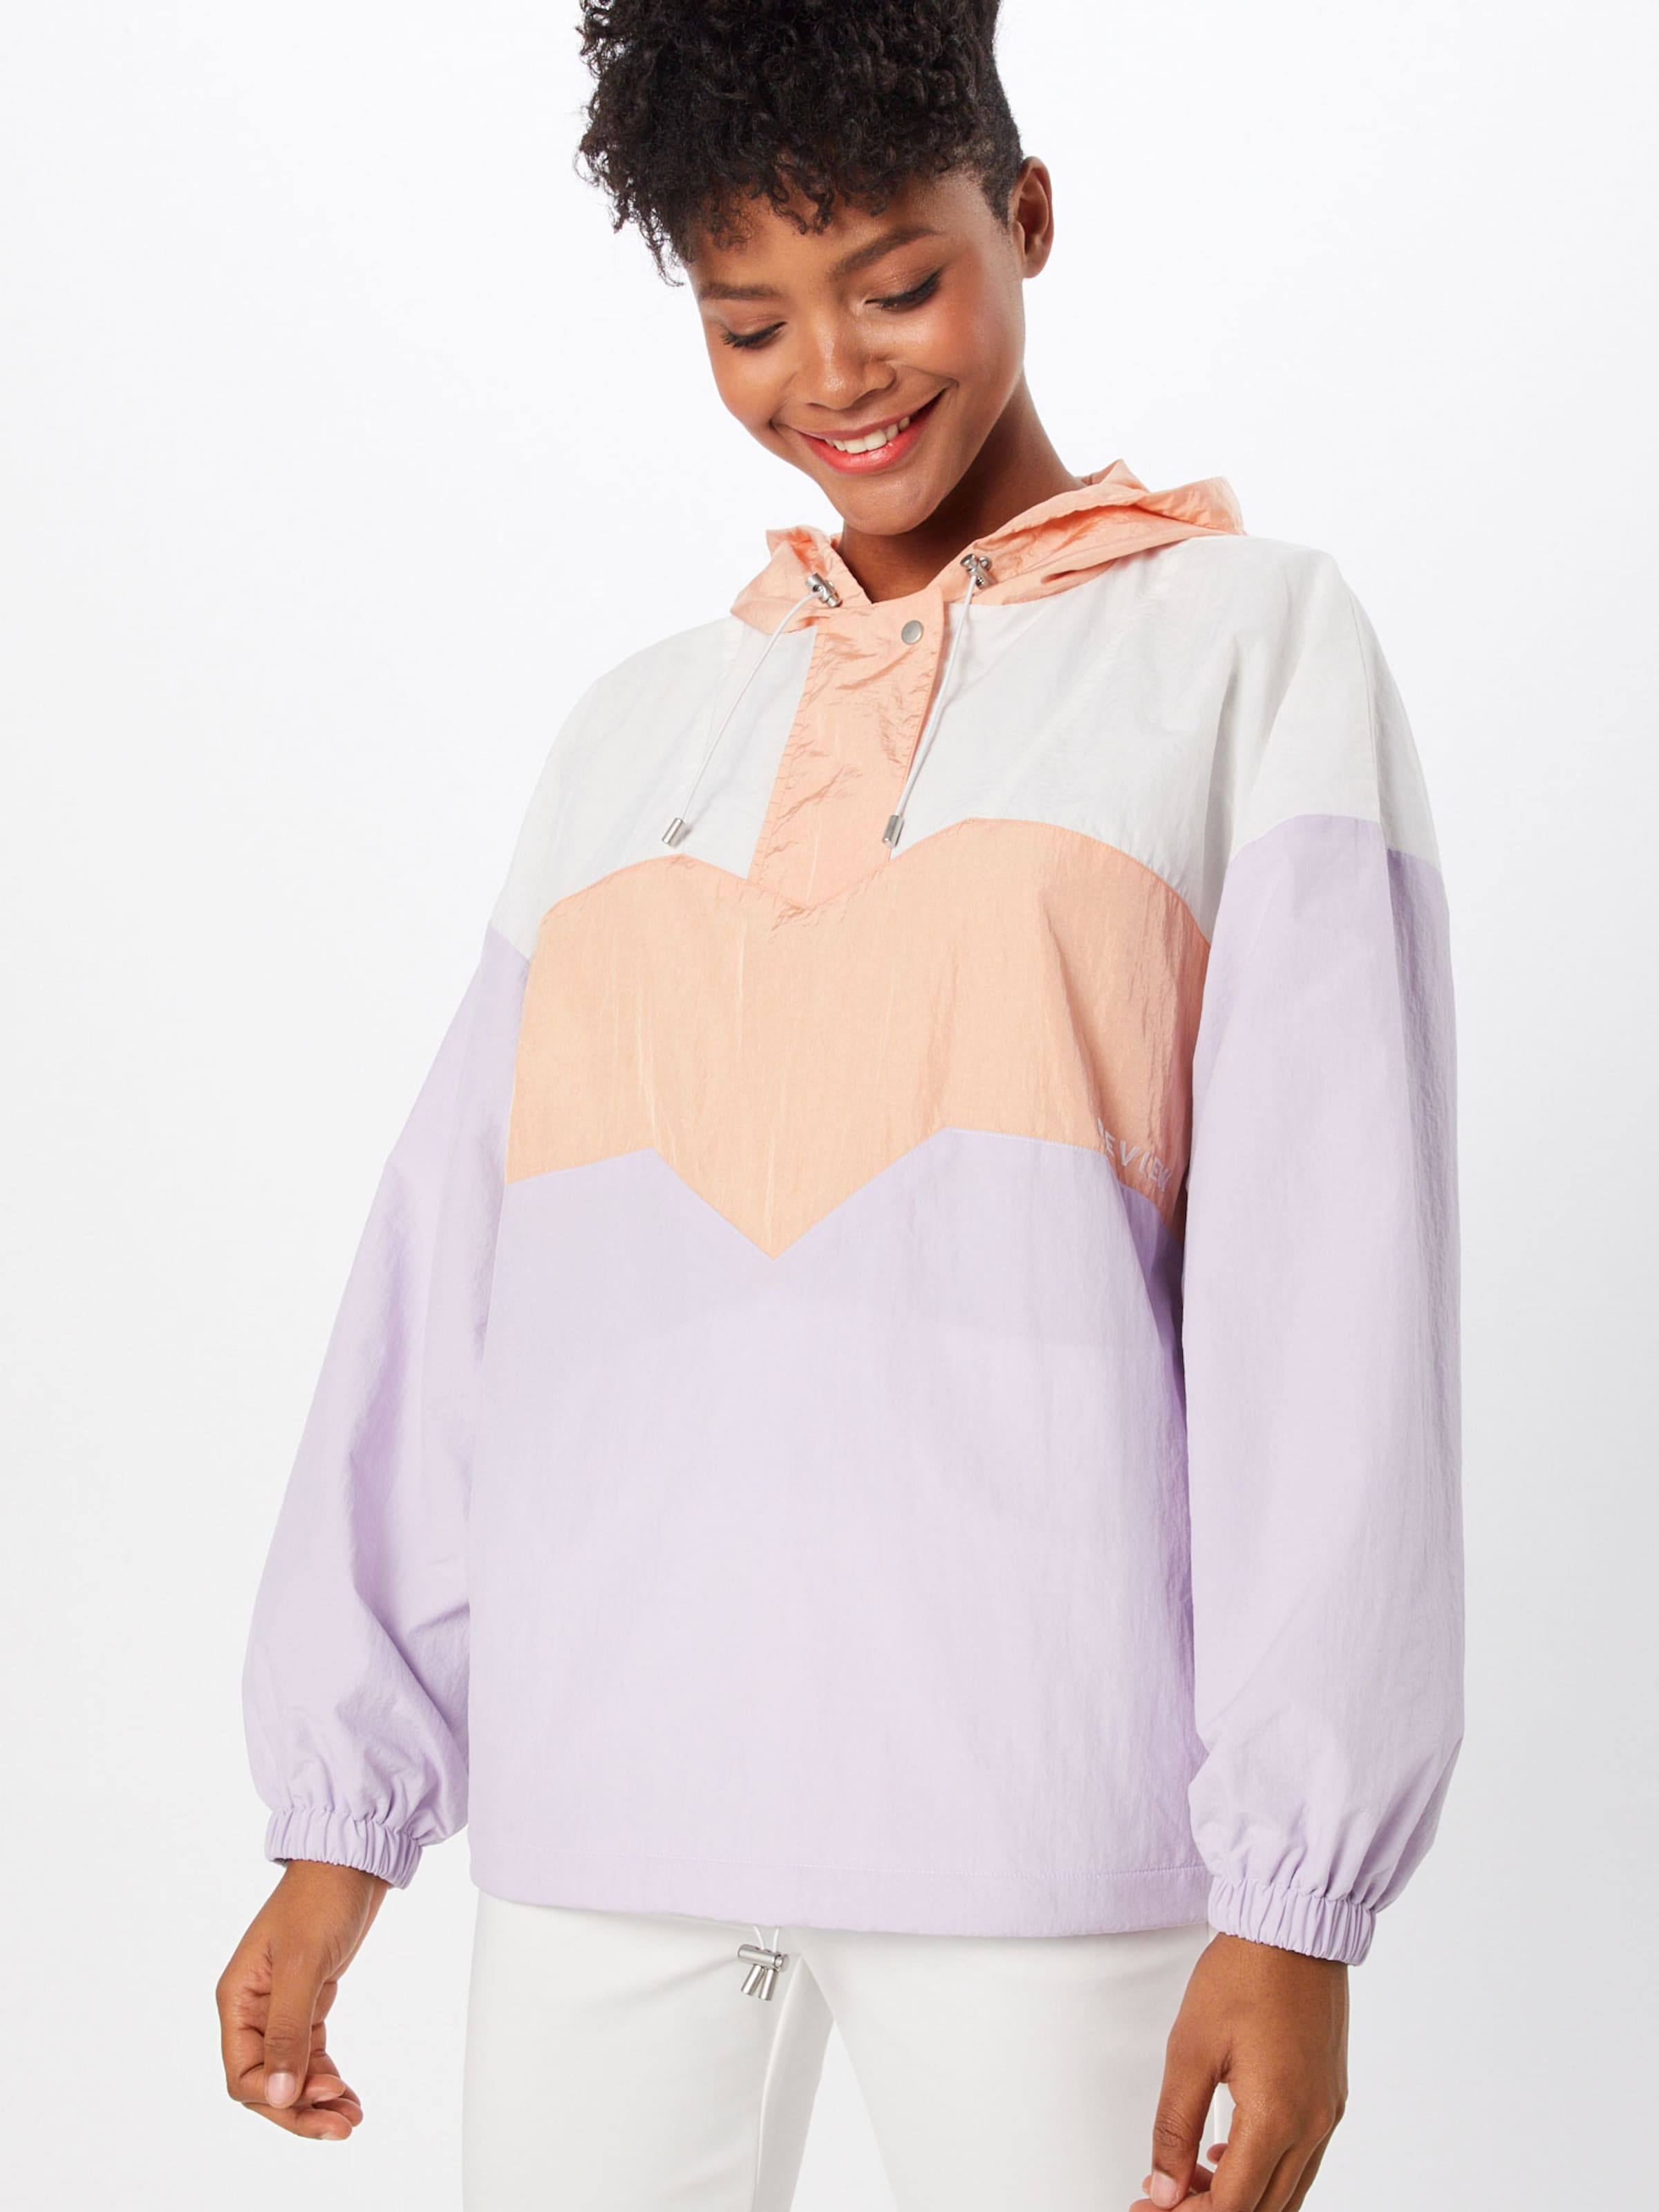 Review Lila In Review In Lila Jacke In Review Jacke Lila In Review Jacke Jacke shQrBdCxt